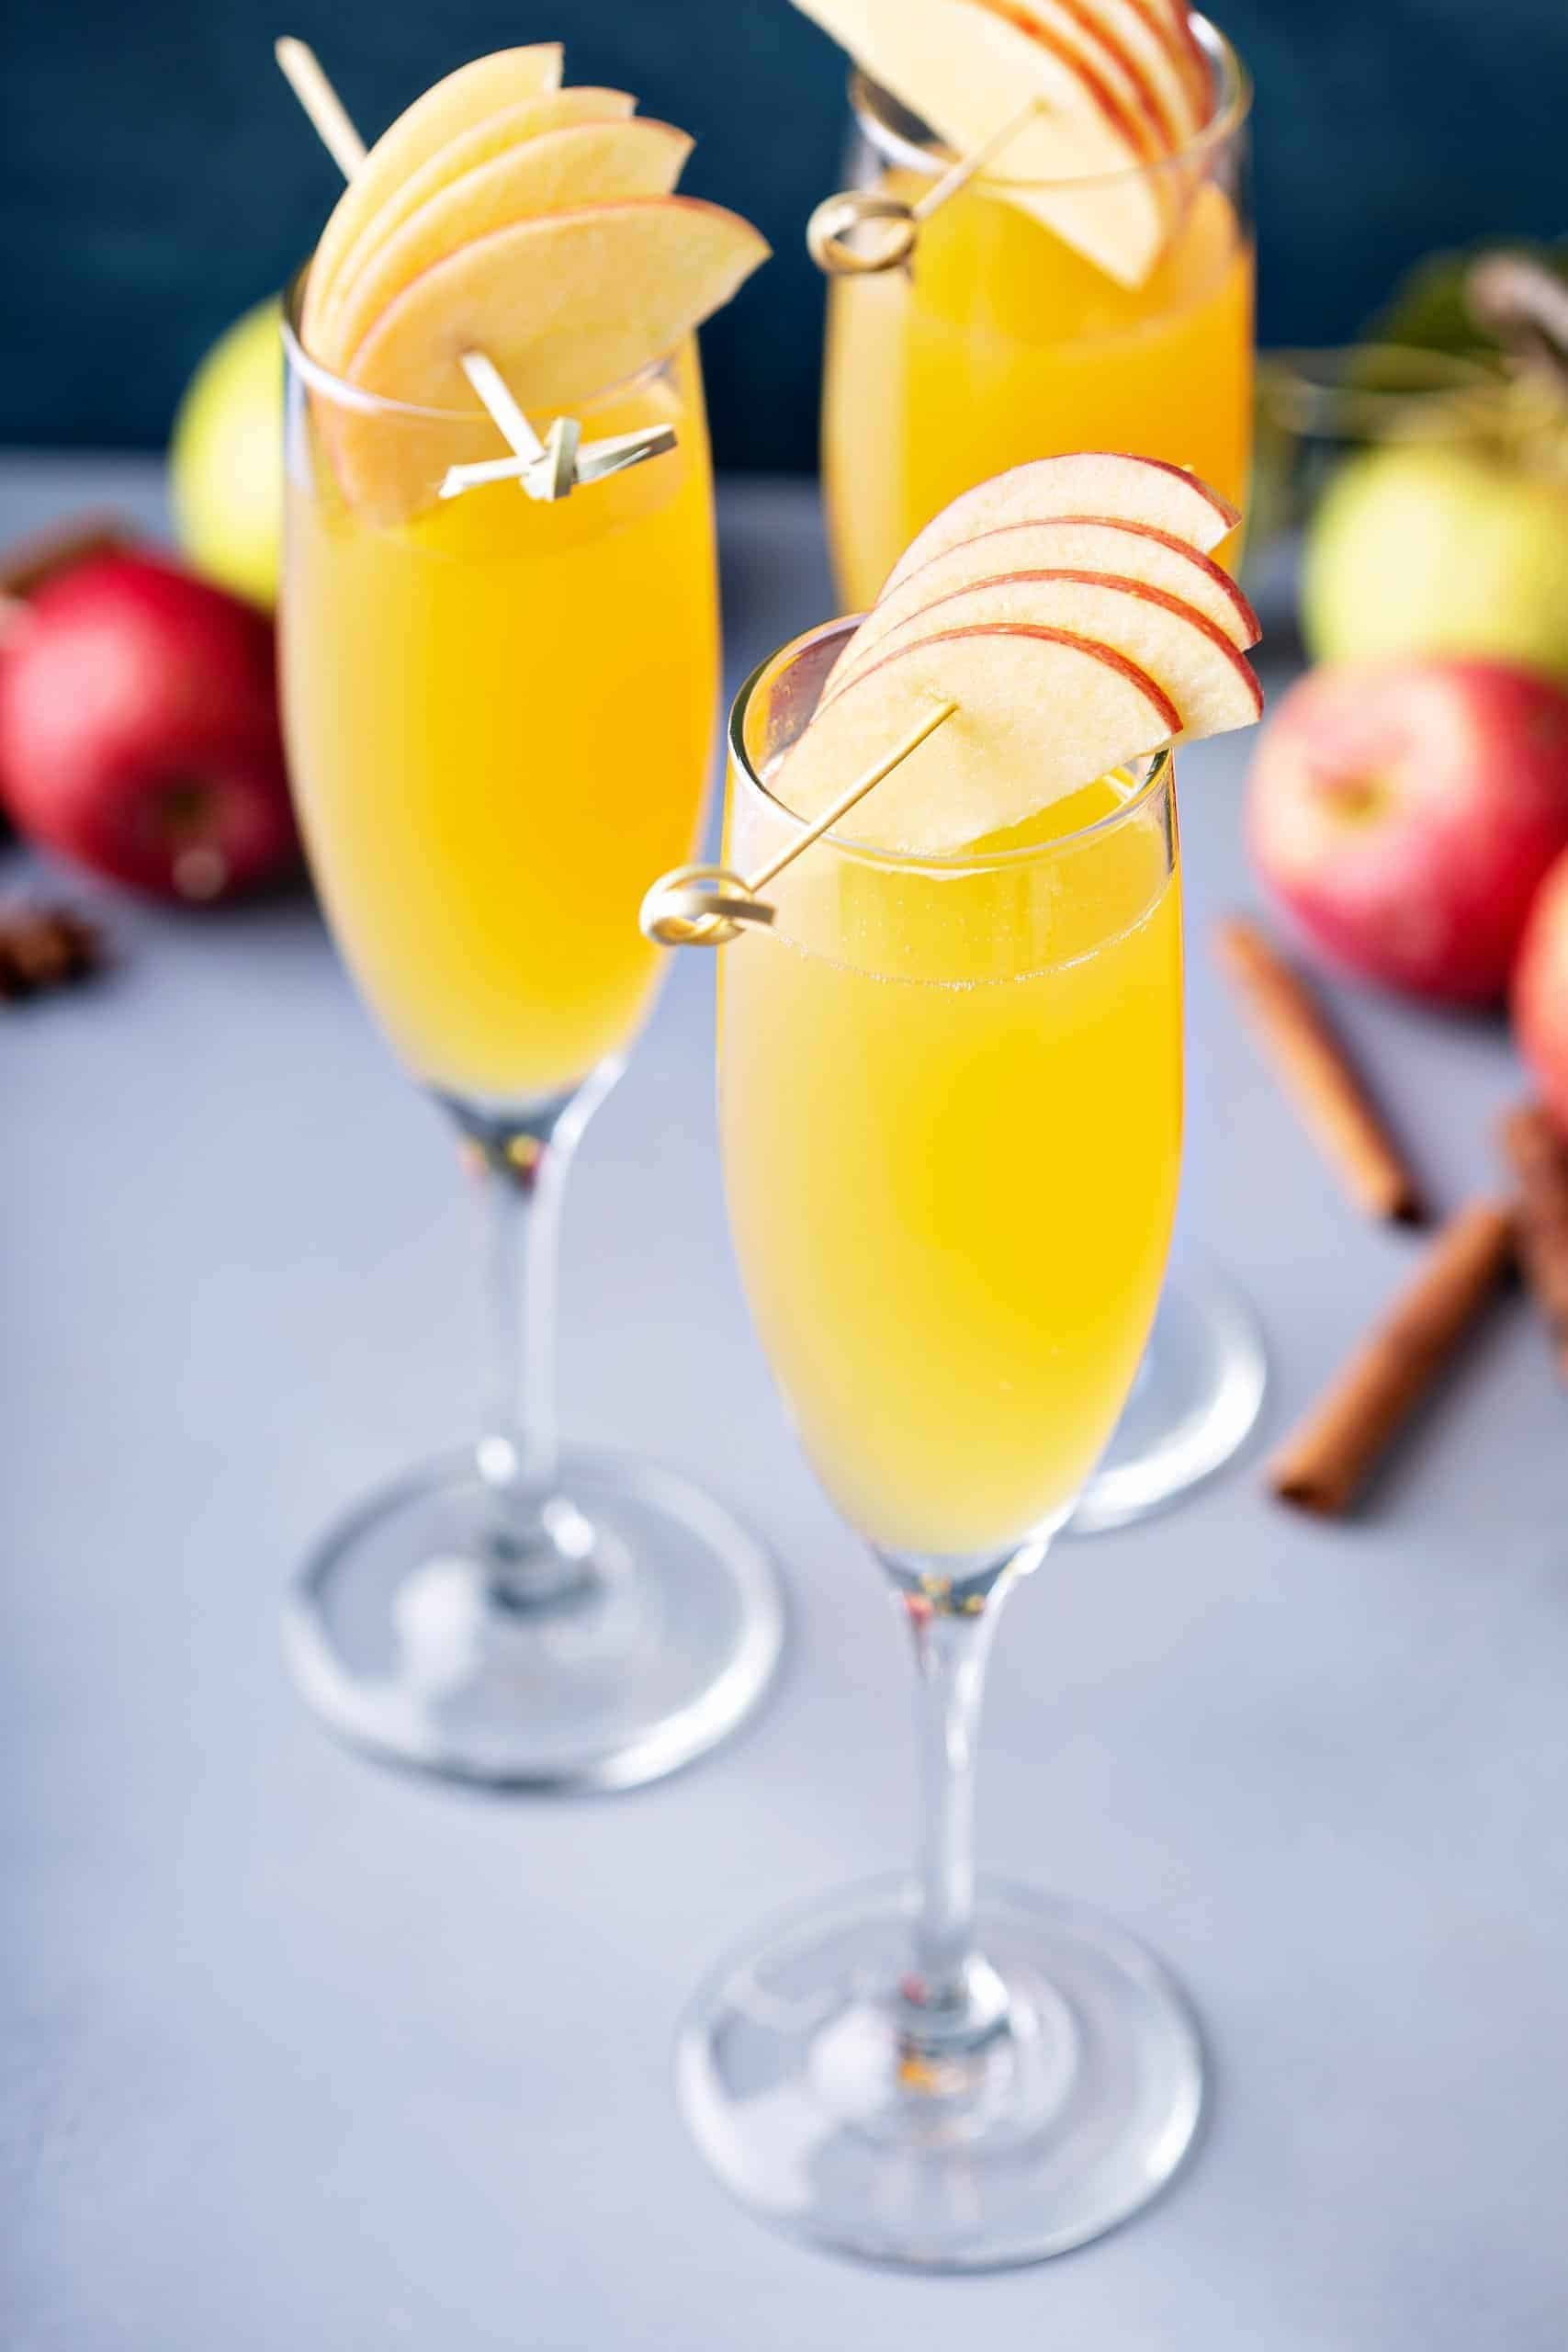 How to Make an Apple Cider Mimosa